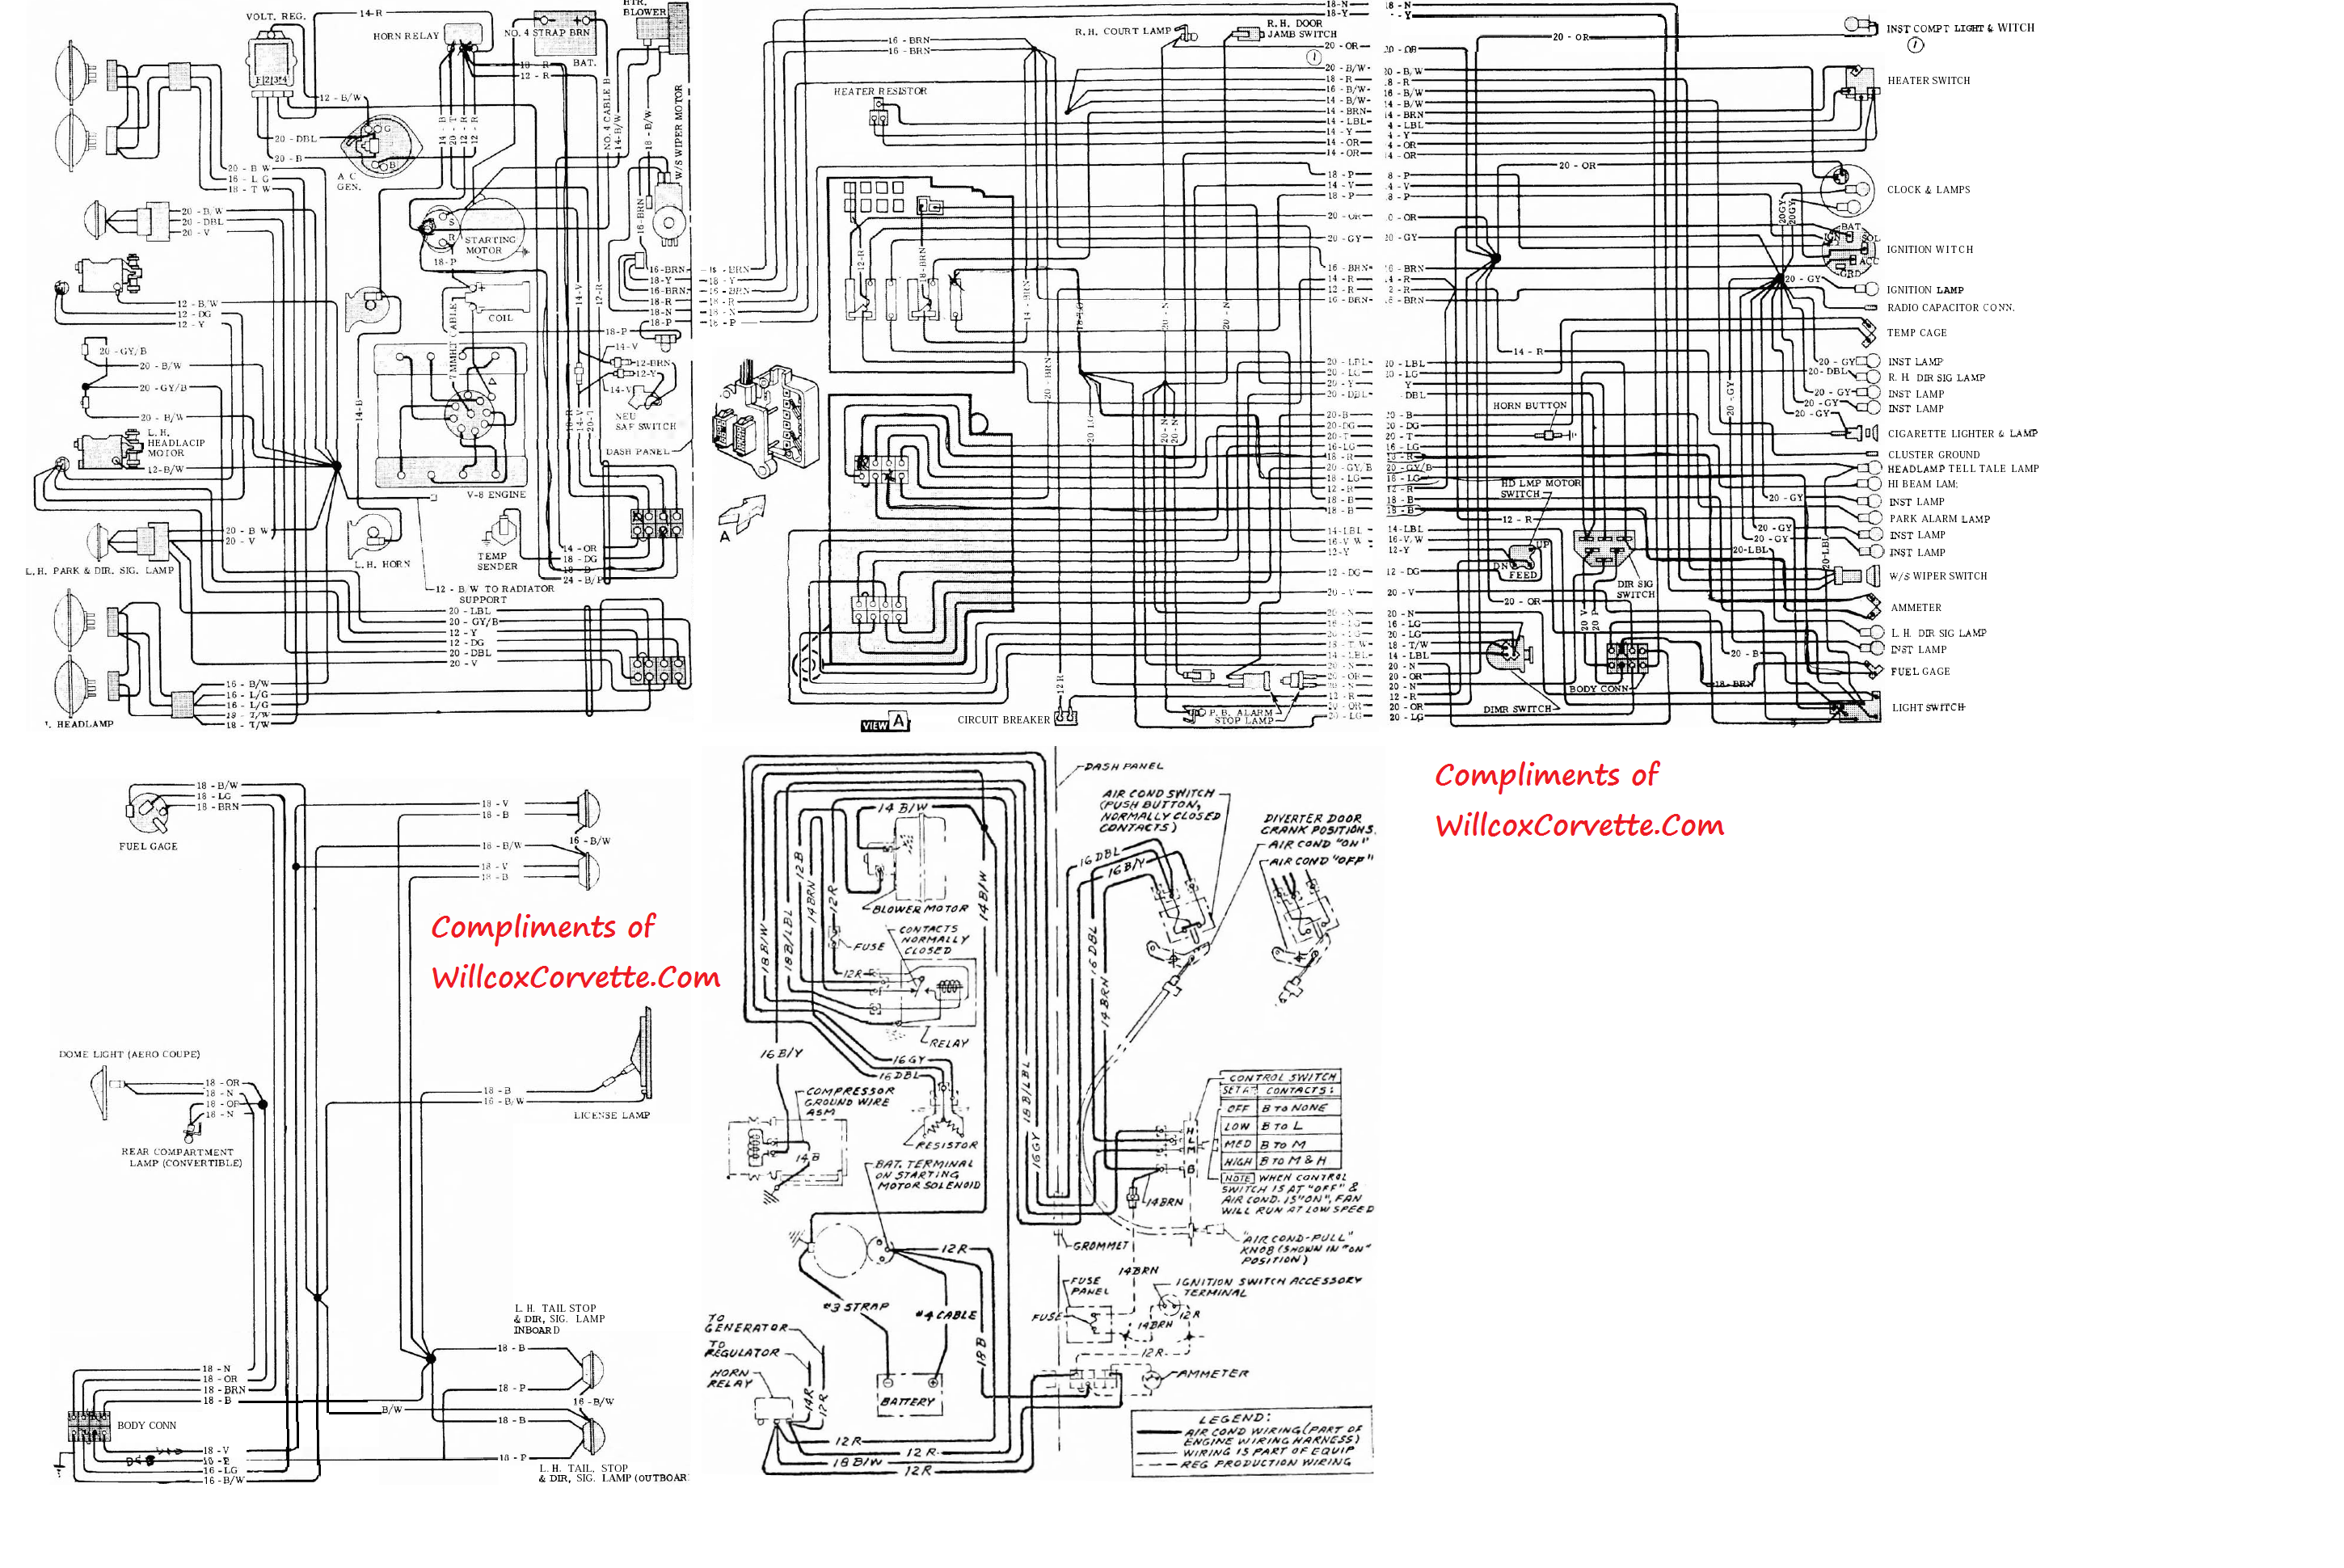 1972 Corvette Electrical Wiring Diagram Further 1973 10hptecumsehcarburetordiagram Home Gt Carburetors Tecumseh 1980 Schematic All Kind Of Diagrams U2022 Rh Investatlanta Co